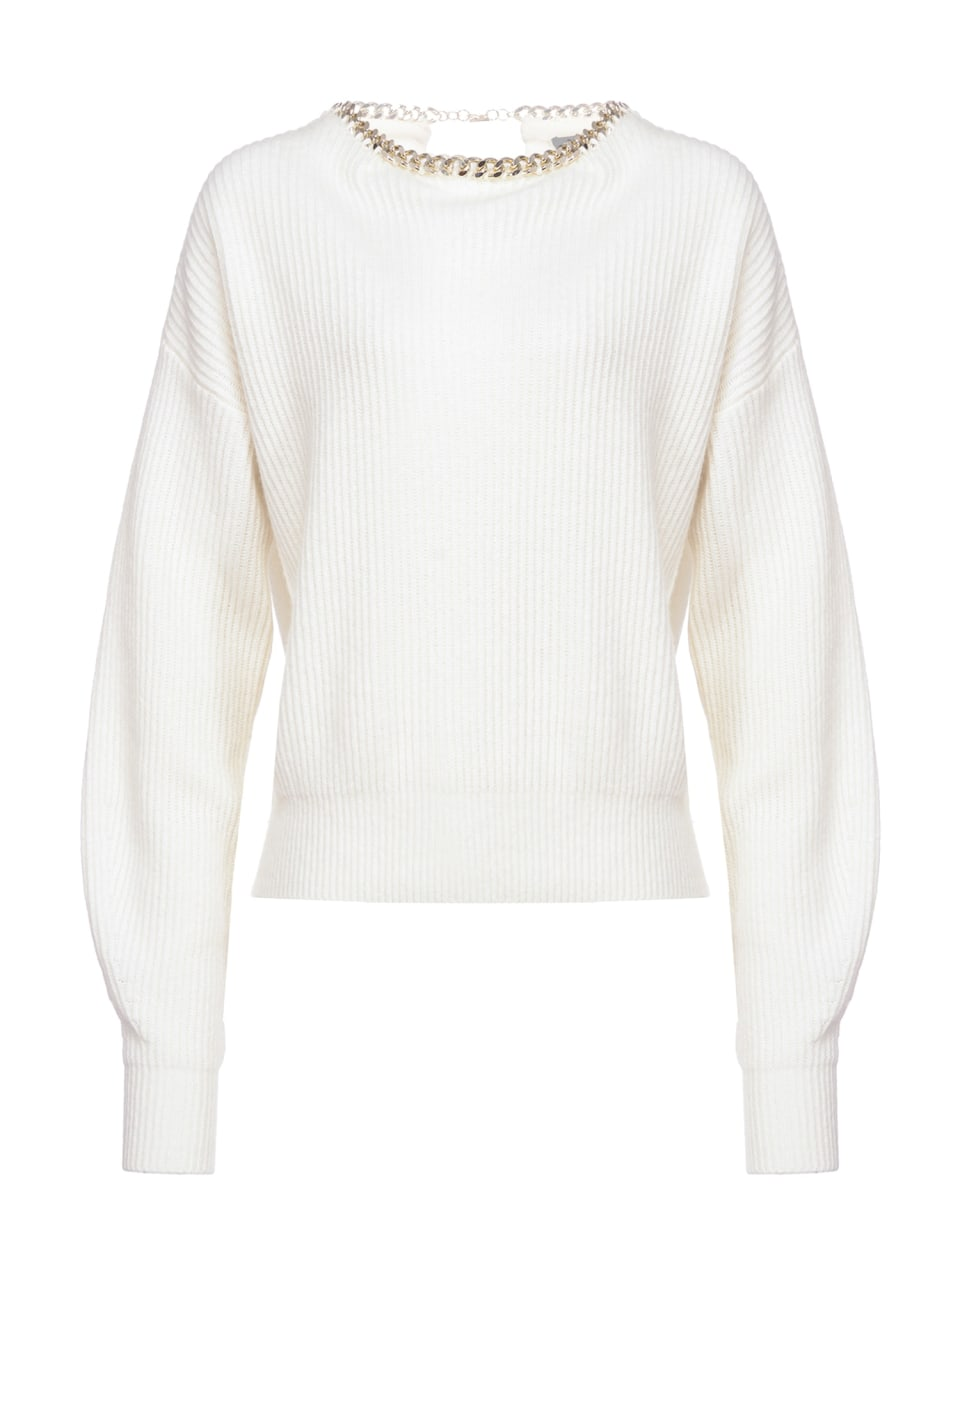 Pullover with chain on the neckline - Pinko